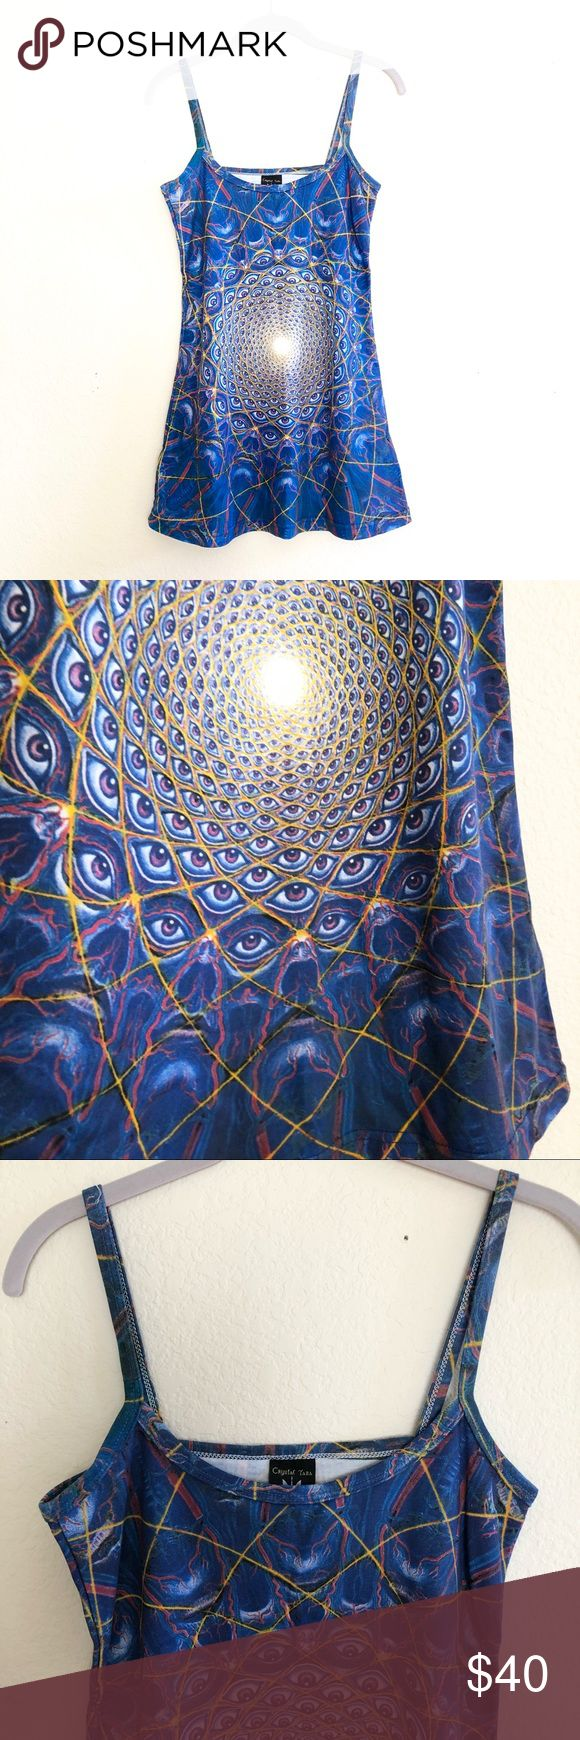 Alex Grey Mini Dress Extremely unique mini dress from artist Alex Grey's Chapel of Sacred Mirrors. Features front and back images of one of his visionary artworks, I forgot the exact one but I will try to find it. I intended on wearing this to a festival but never went or any 😂 amazing spectrum of colors- mainly blue and purple. A really inspiring piece. Great for a festival, or any other psychedelic event. Truly one of a kind piece. I don't really want to let this go 😢. Brand new, never…